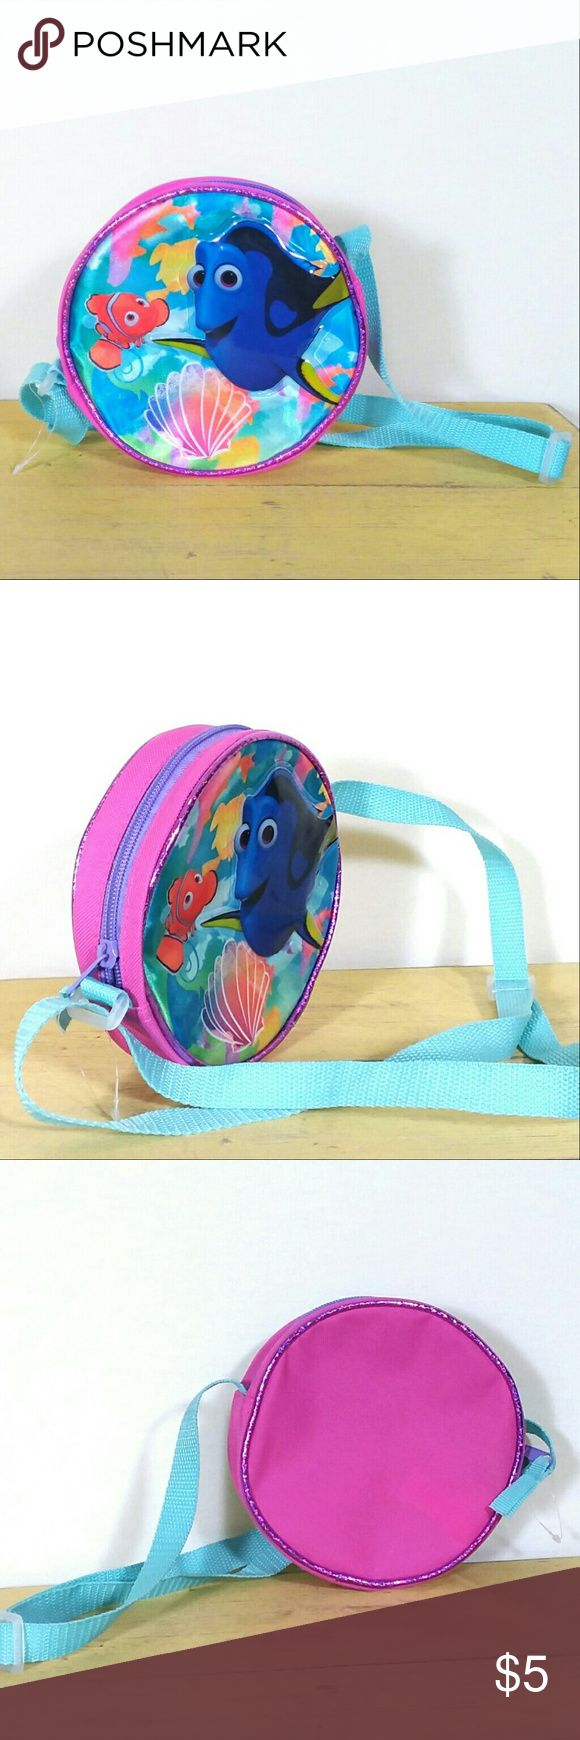 """Finding Dory circle purse shoulder bag Offers Are Awesome!! Bundles Make It Better! NWOT small circle shaped purse with 3D plastic front featuring Dory and Nemo from Disney Pixar Finding Dory movie. Pink base color, turquoise shoulder strap adjusts from 8-16"""". Polyester/nylon. Approx. 7"""" circumference with 2.5"""" interior width. #findingdory #findingnemo #girlspurse #disneybag #pixar Disney Accessories Bags"""